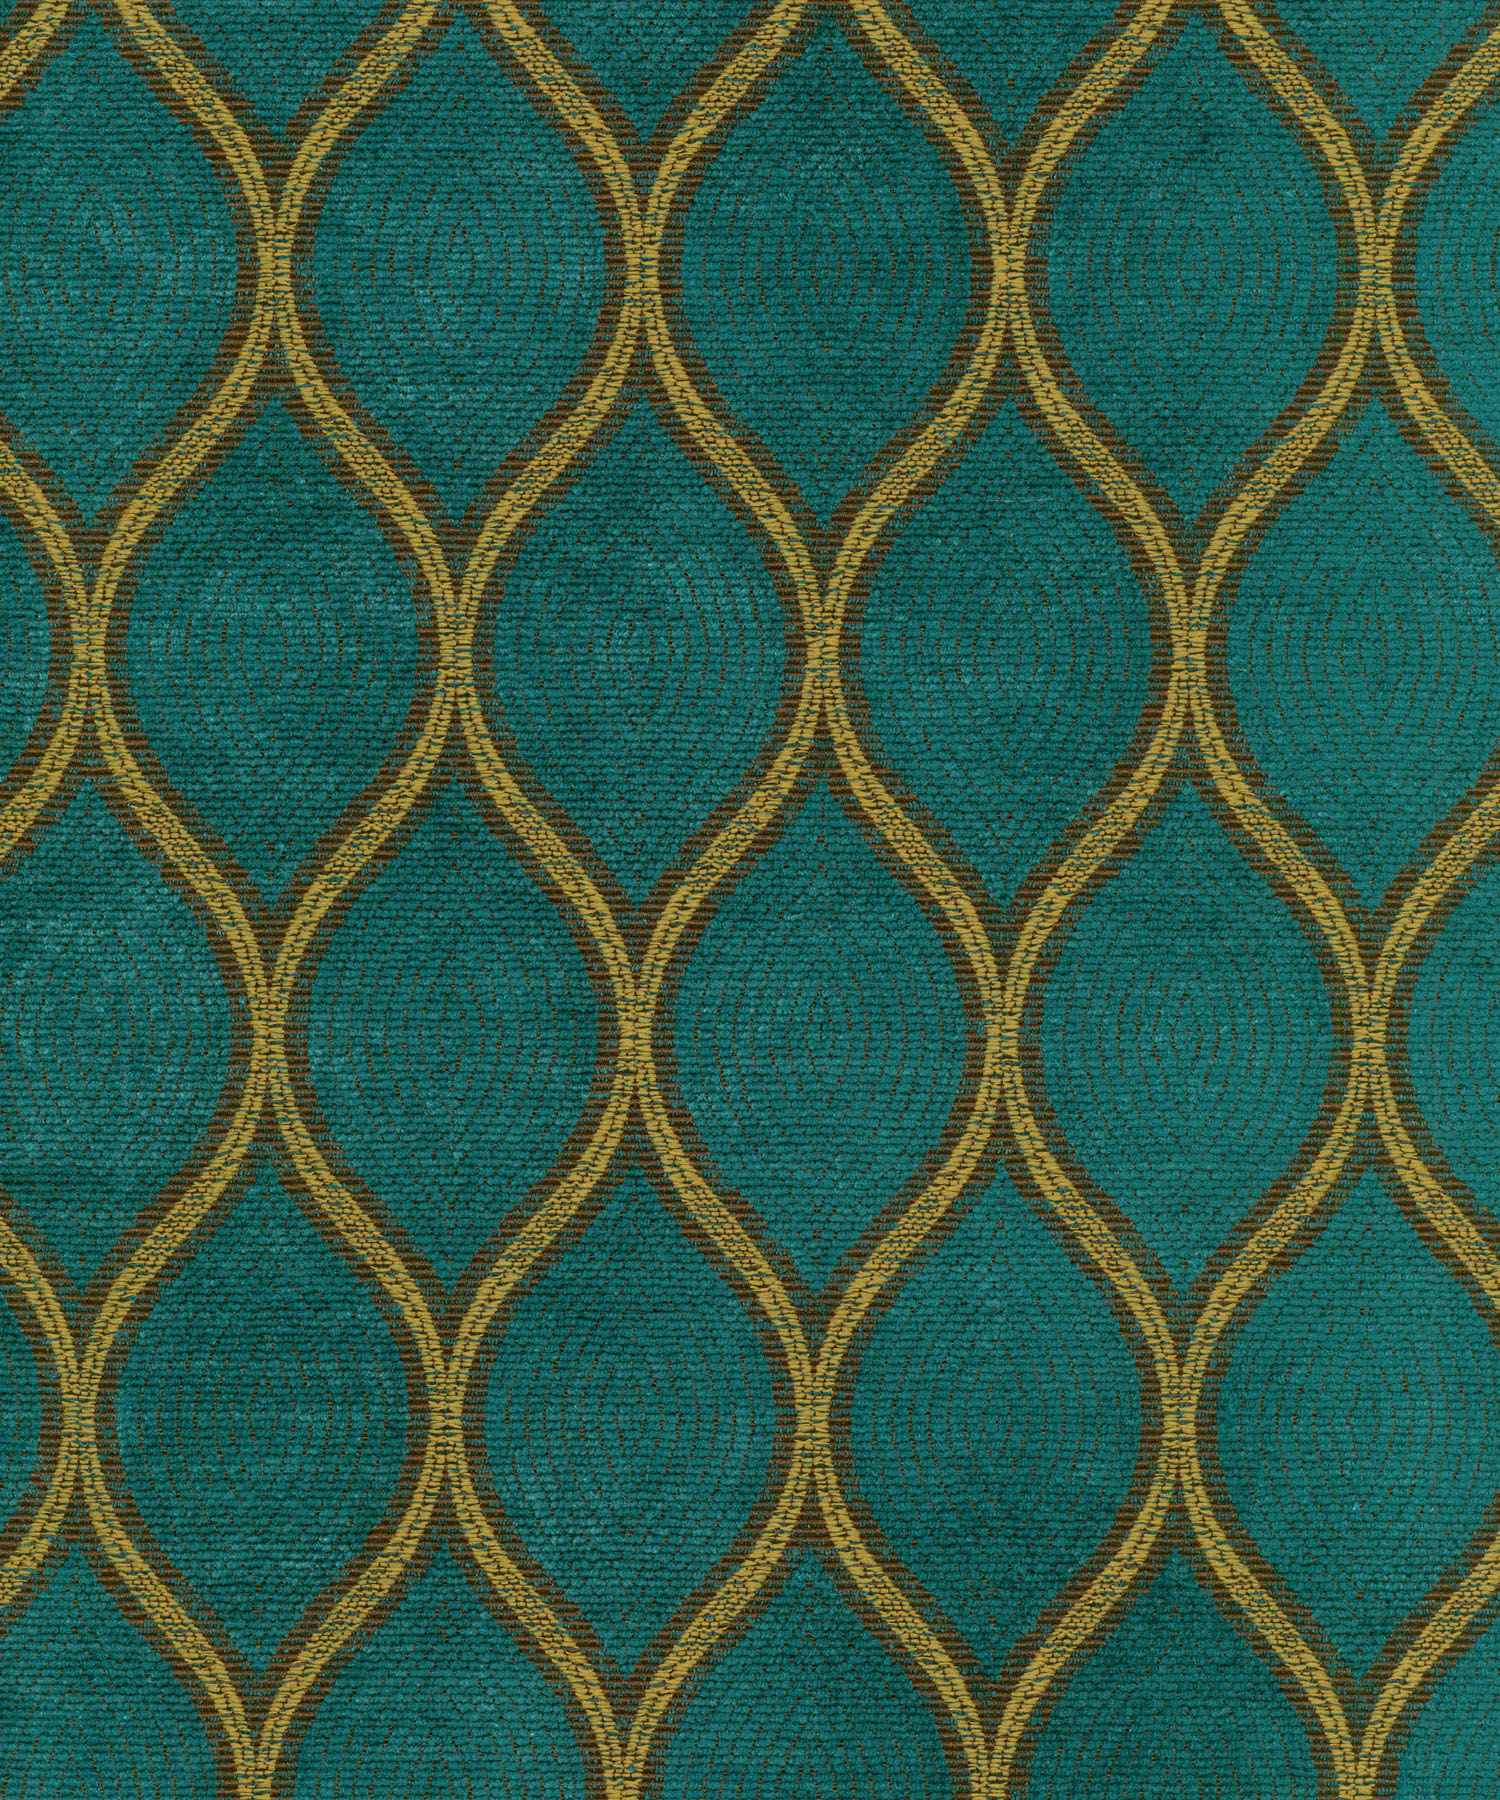 Home Decor 8\u0022x8\u0022 Fabric Swatch-IMAN Malta Peacock